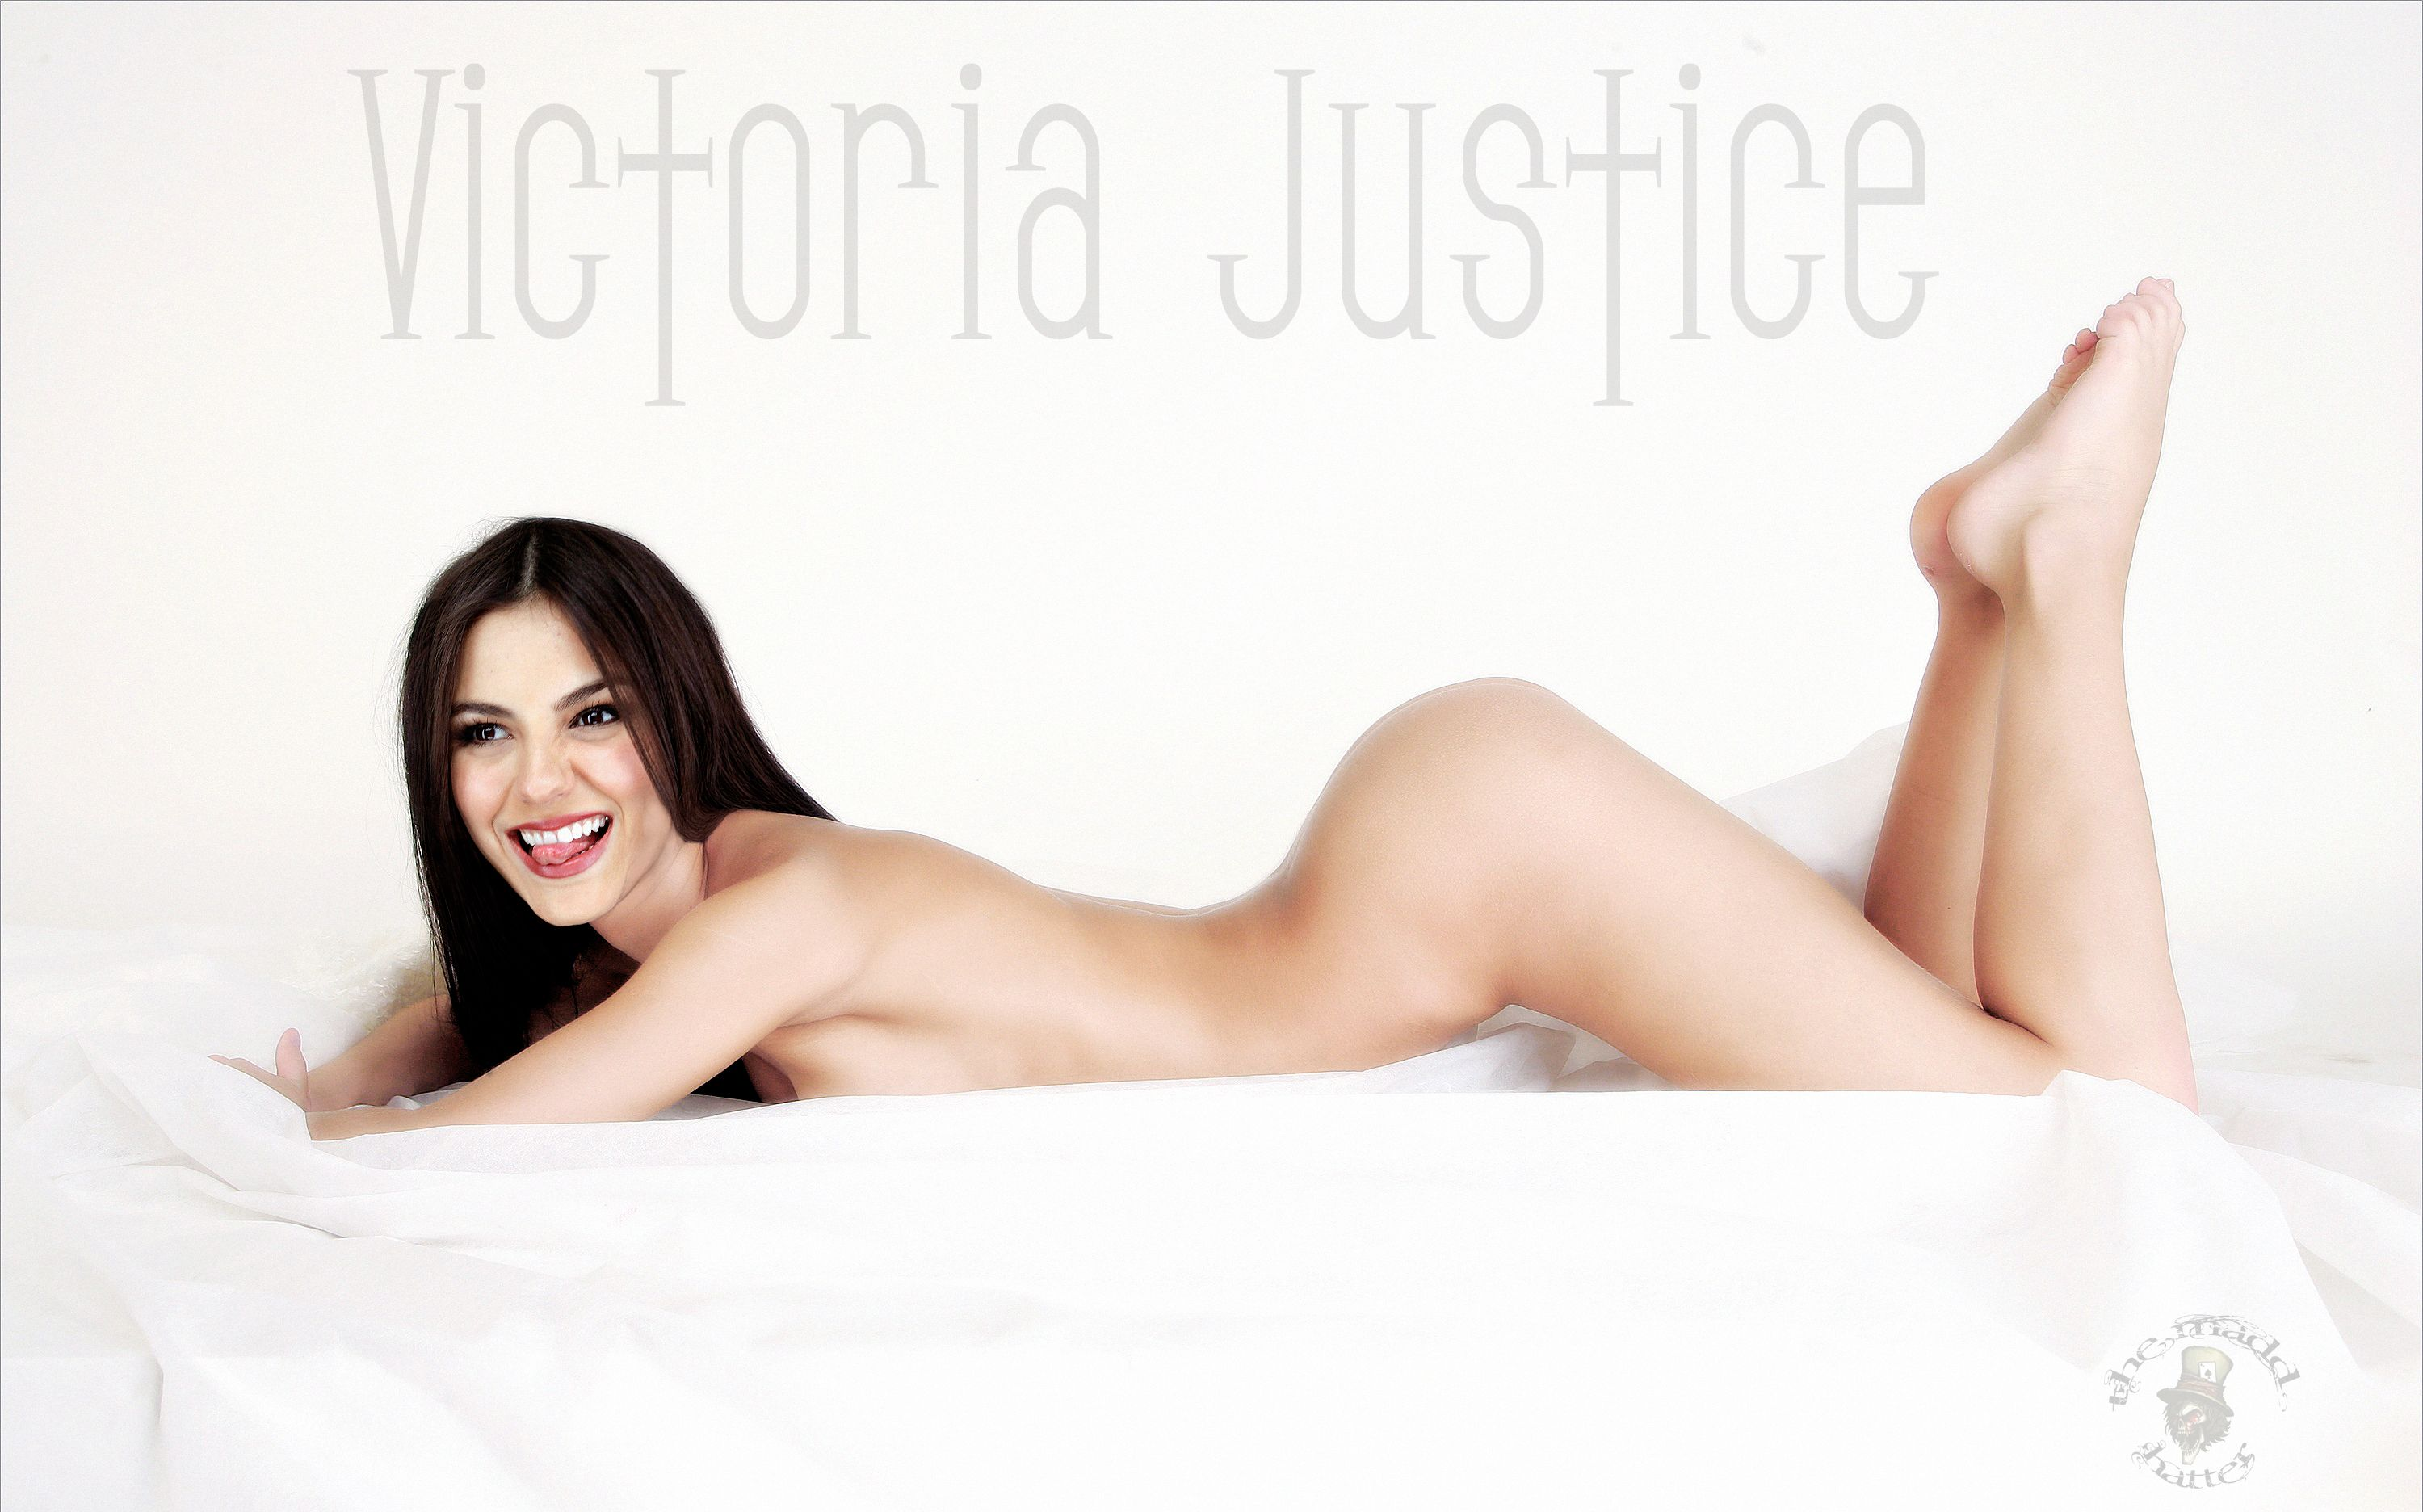 victoria-justice-ass-galleries-the-girl-from-phineas-and-ferb-naked